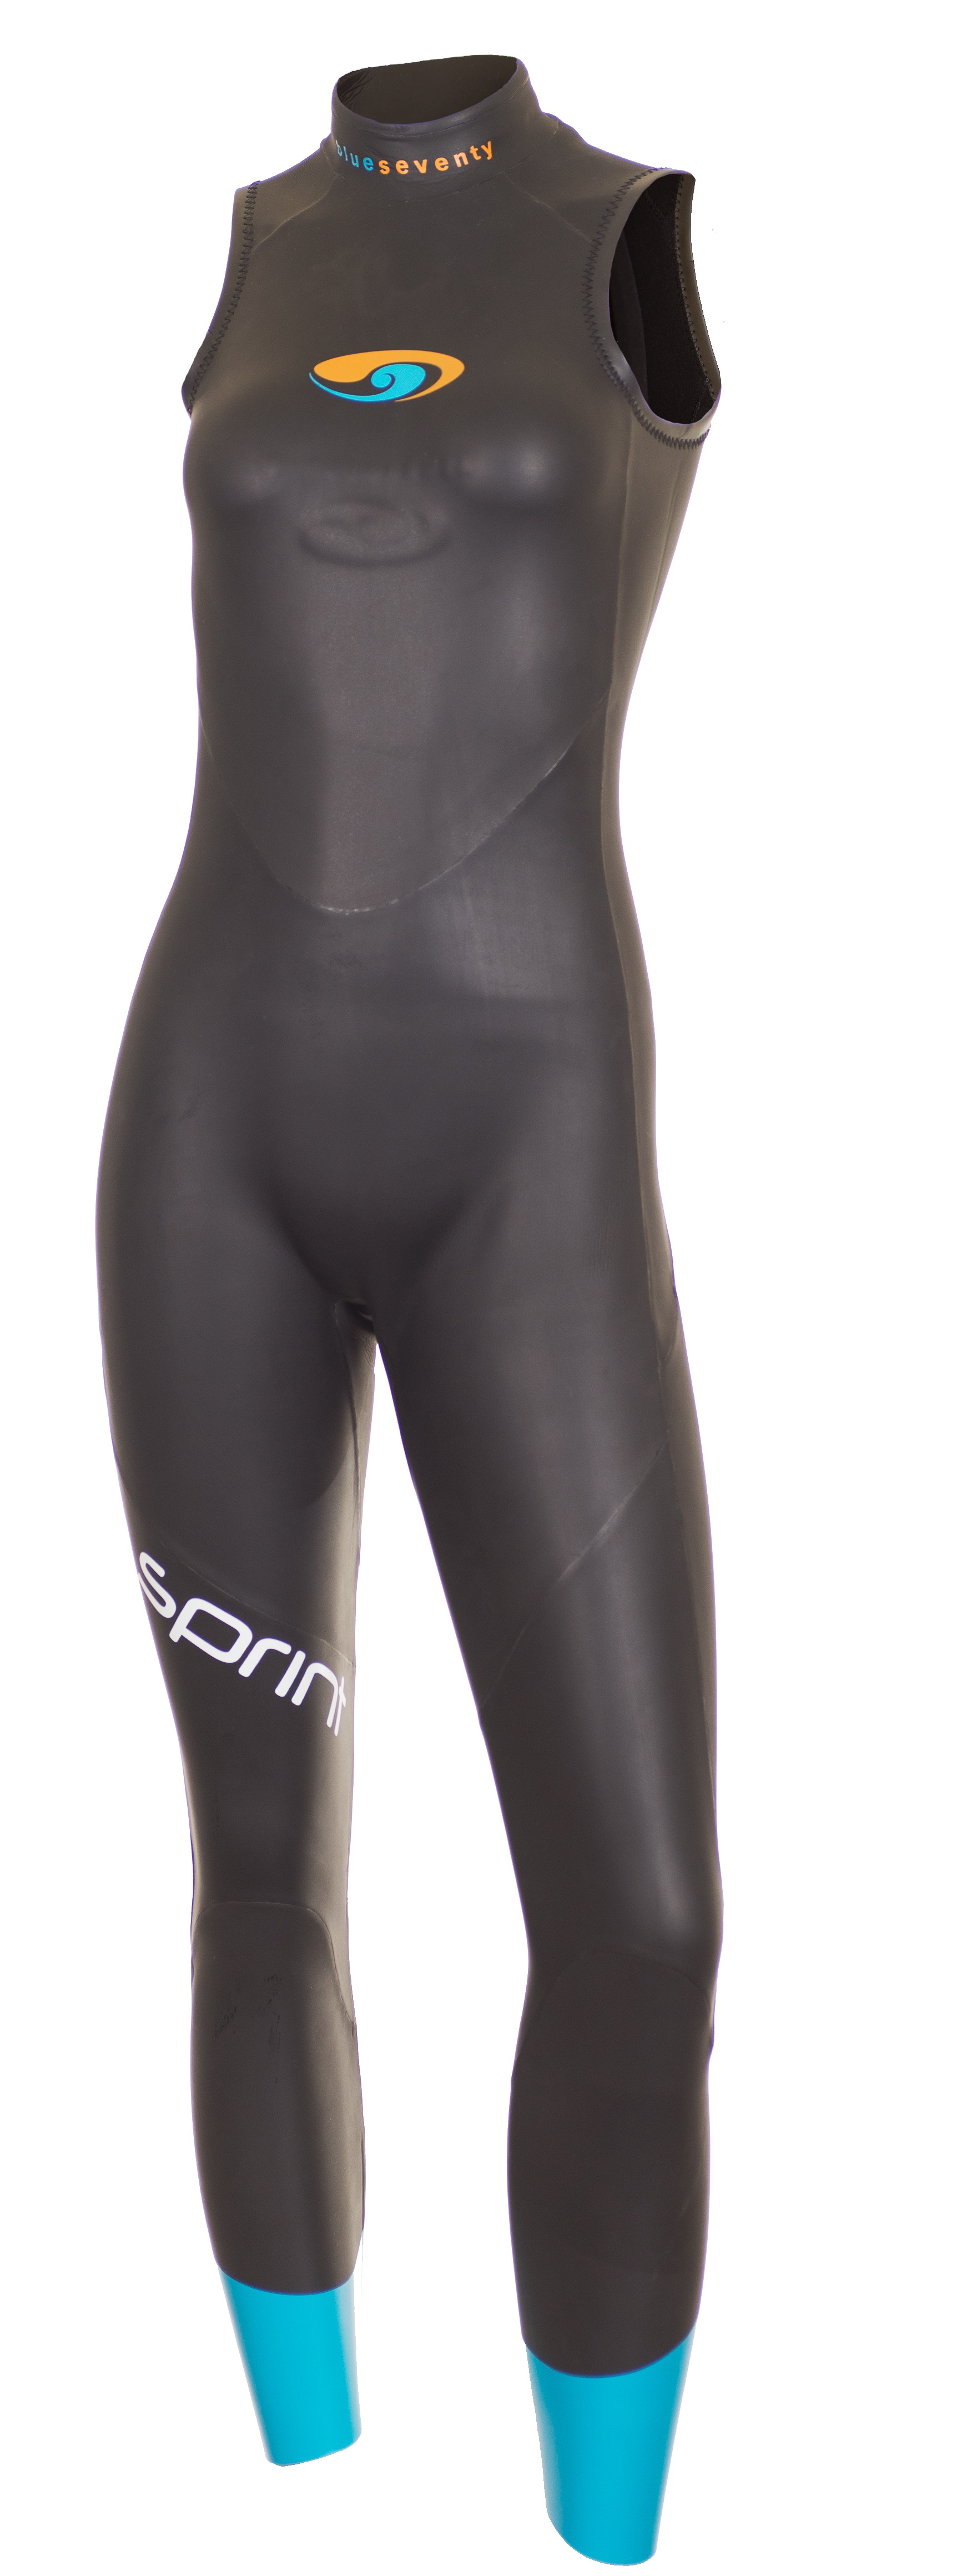 Blue Seventy Sprint Long John Women's Sleeveless Triathlon Wetsuit - Updated Model!